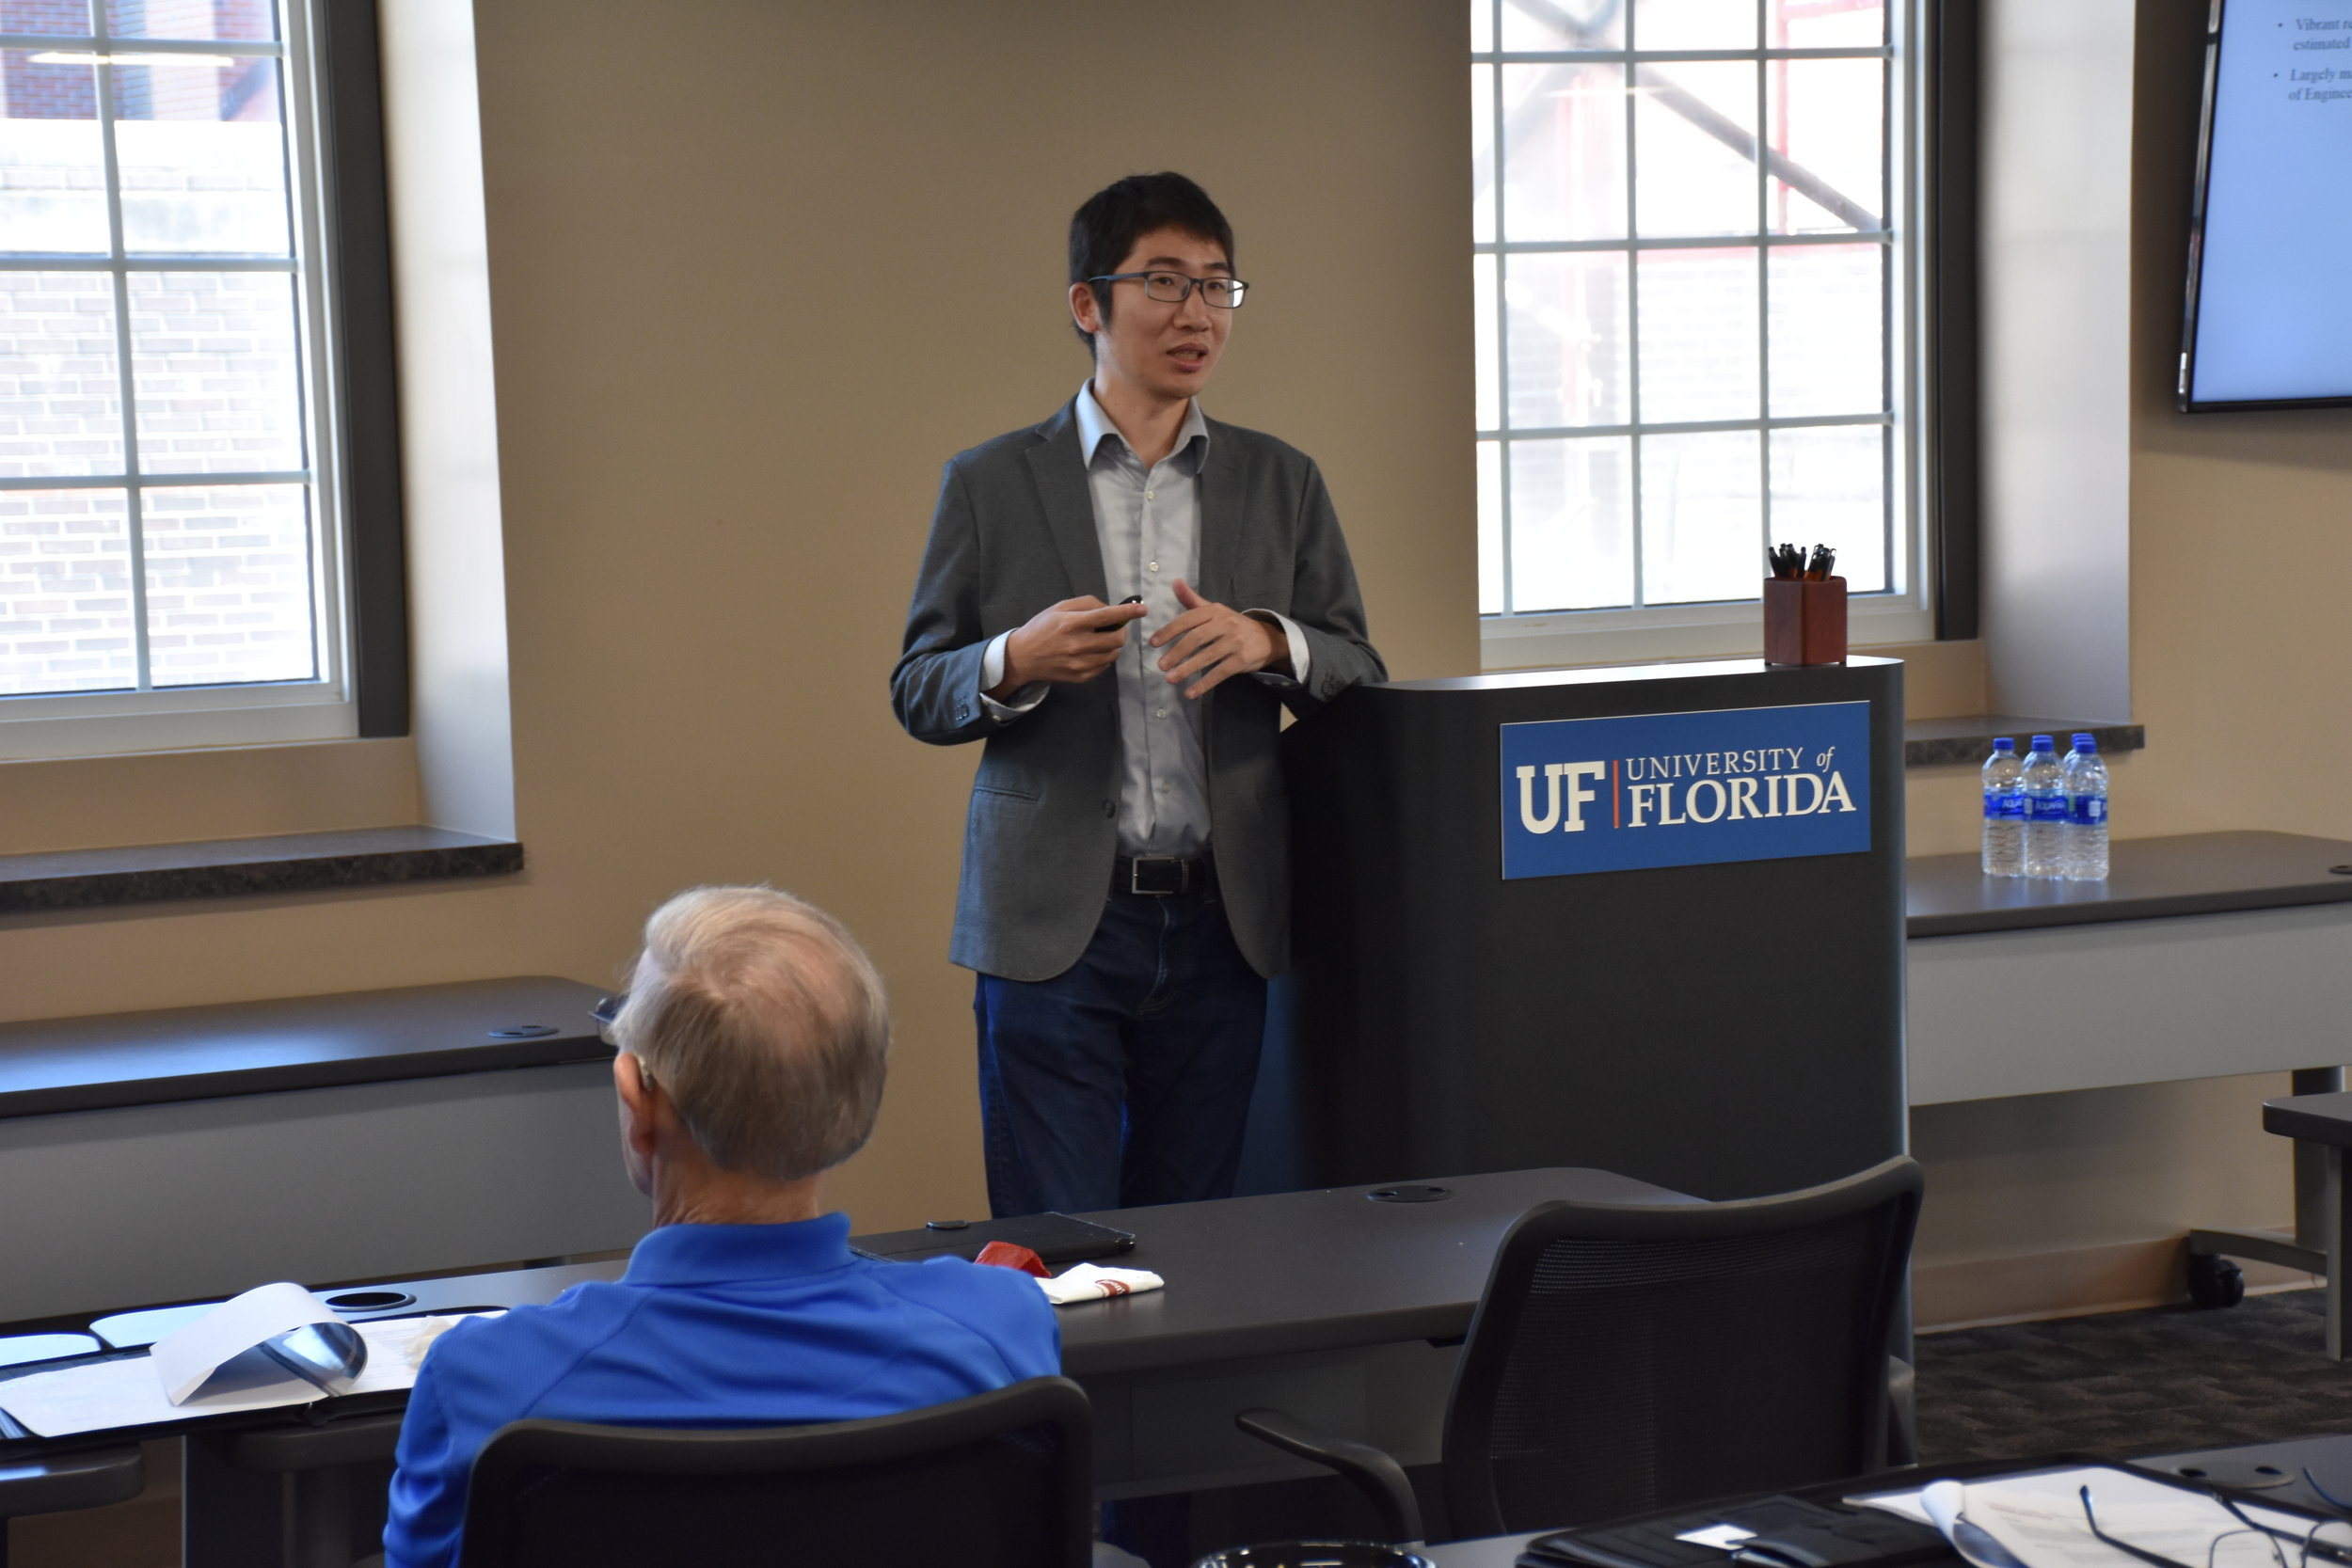 PhD Student, David Ma presents his work with data collection and analysis of Tripadvisor review data.